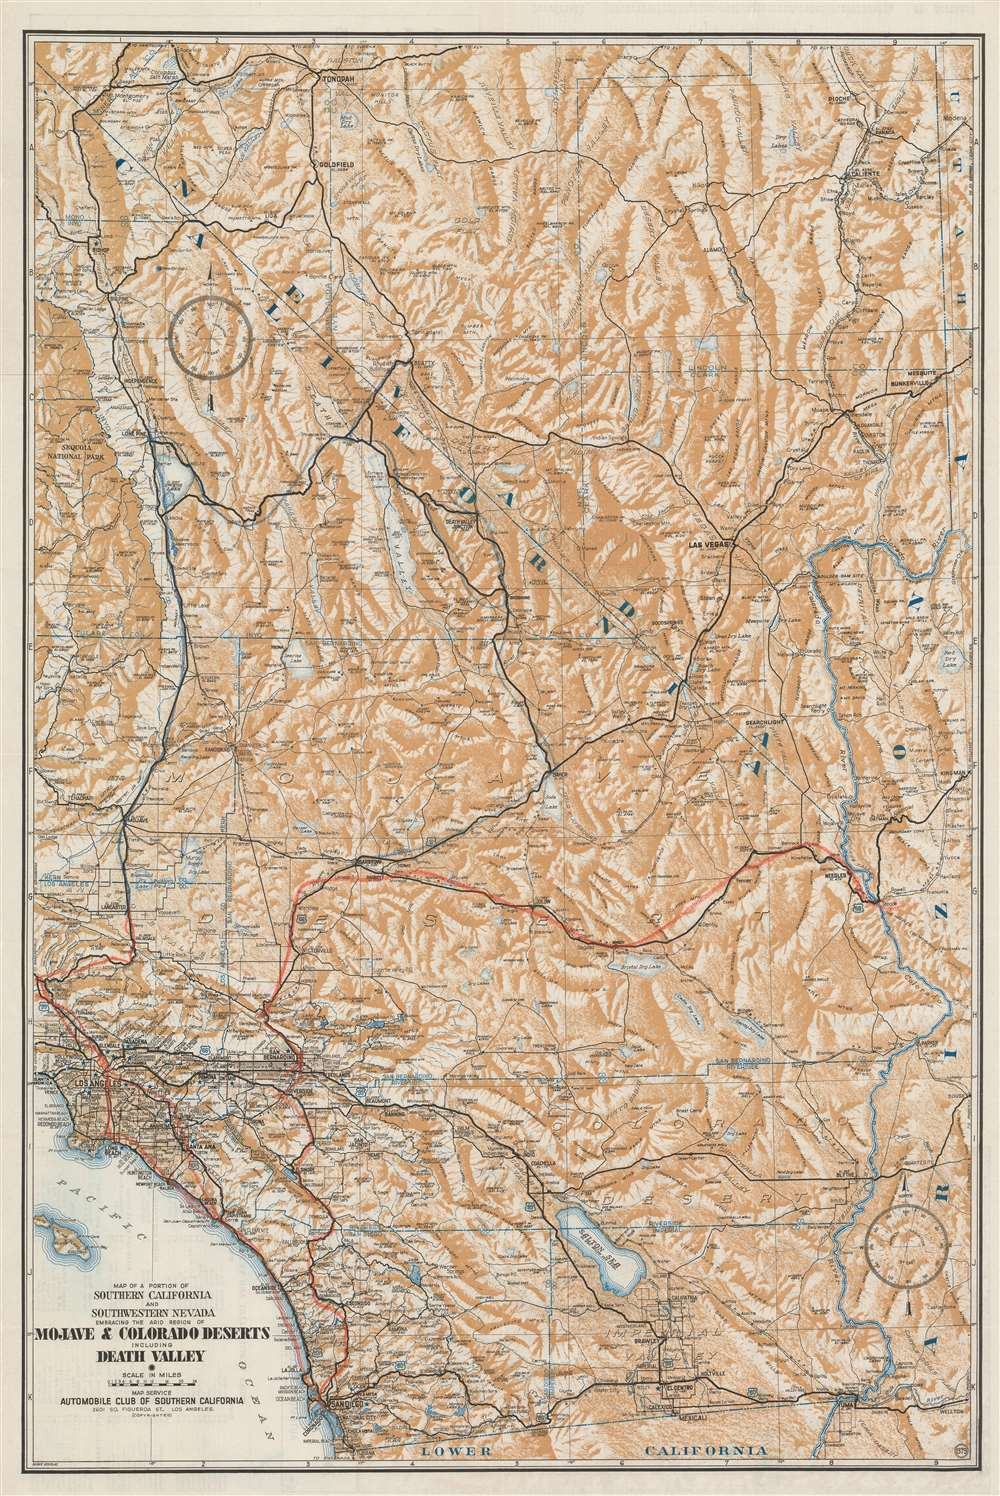 Map of a Portion of Southern  California and Southwestern Nevada Embracing the Arid Region of Mojave and Colorado Deserts Including Death Valley. - Main View